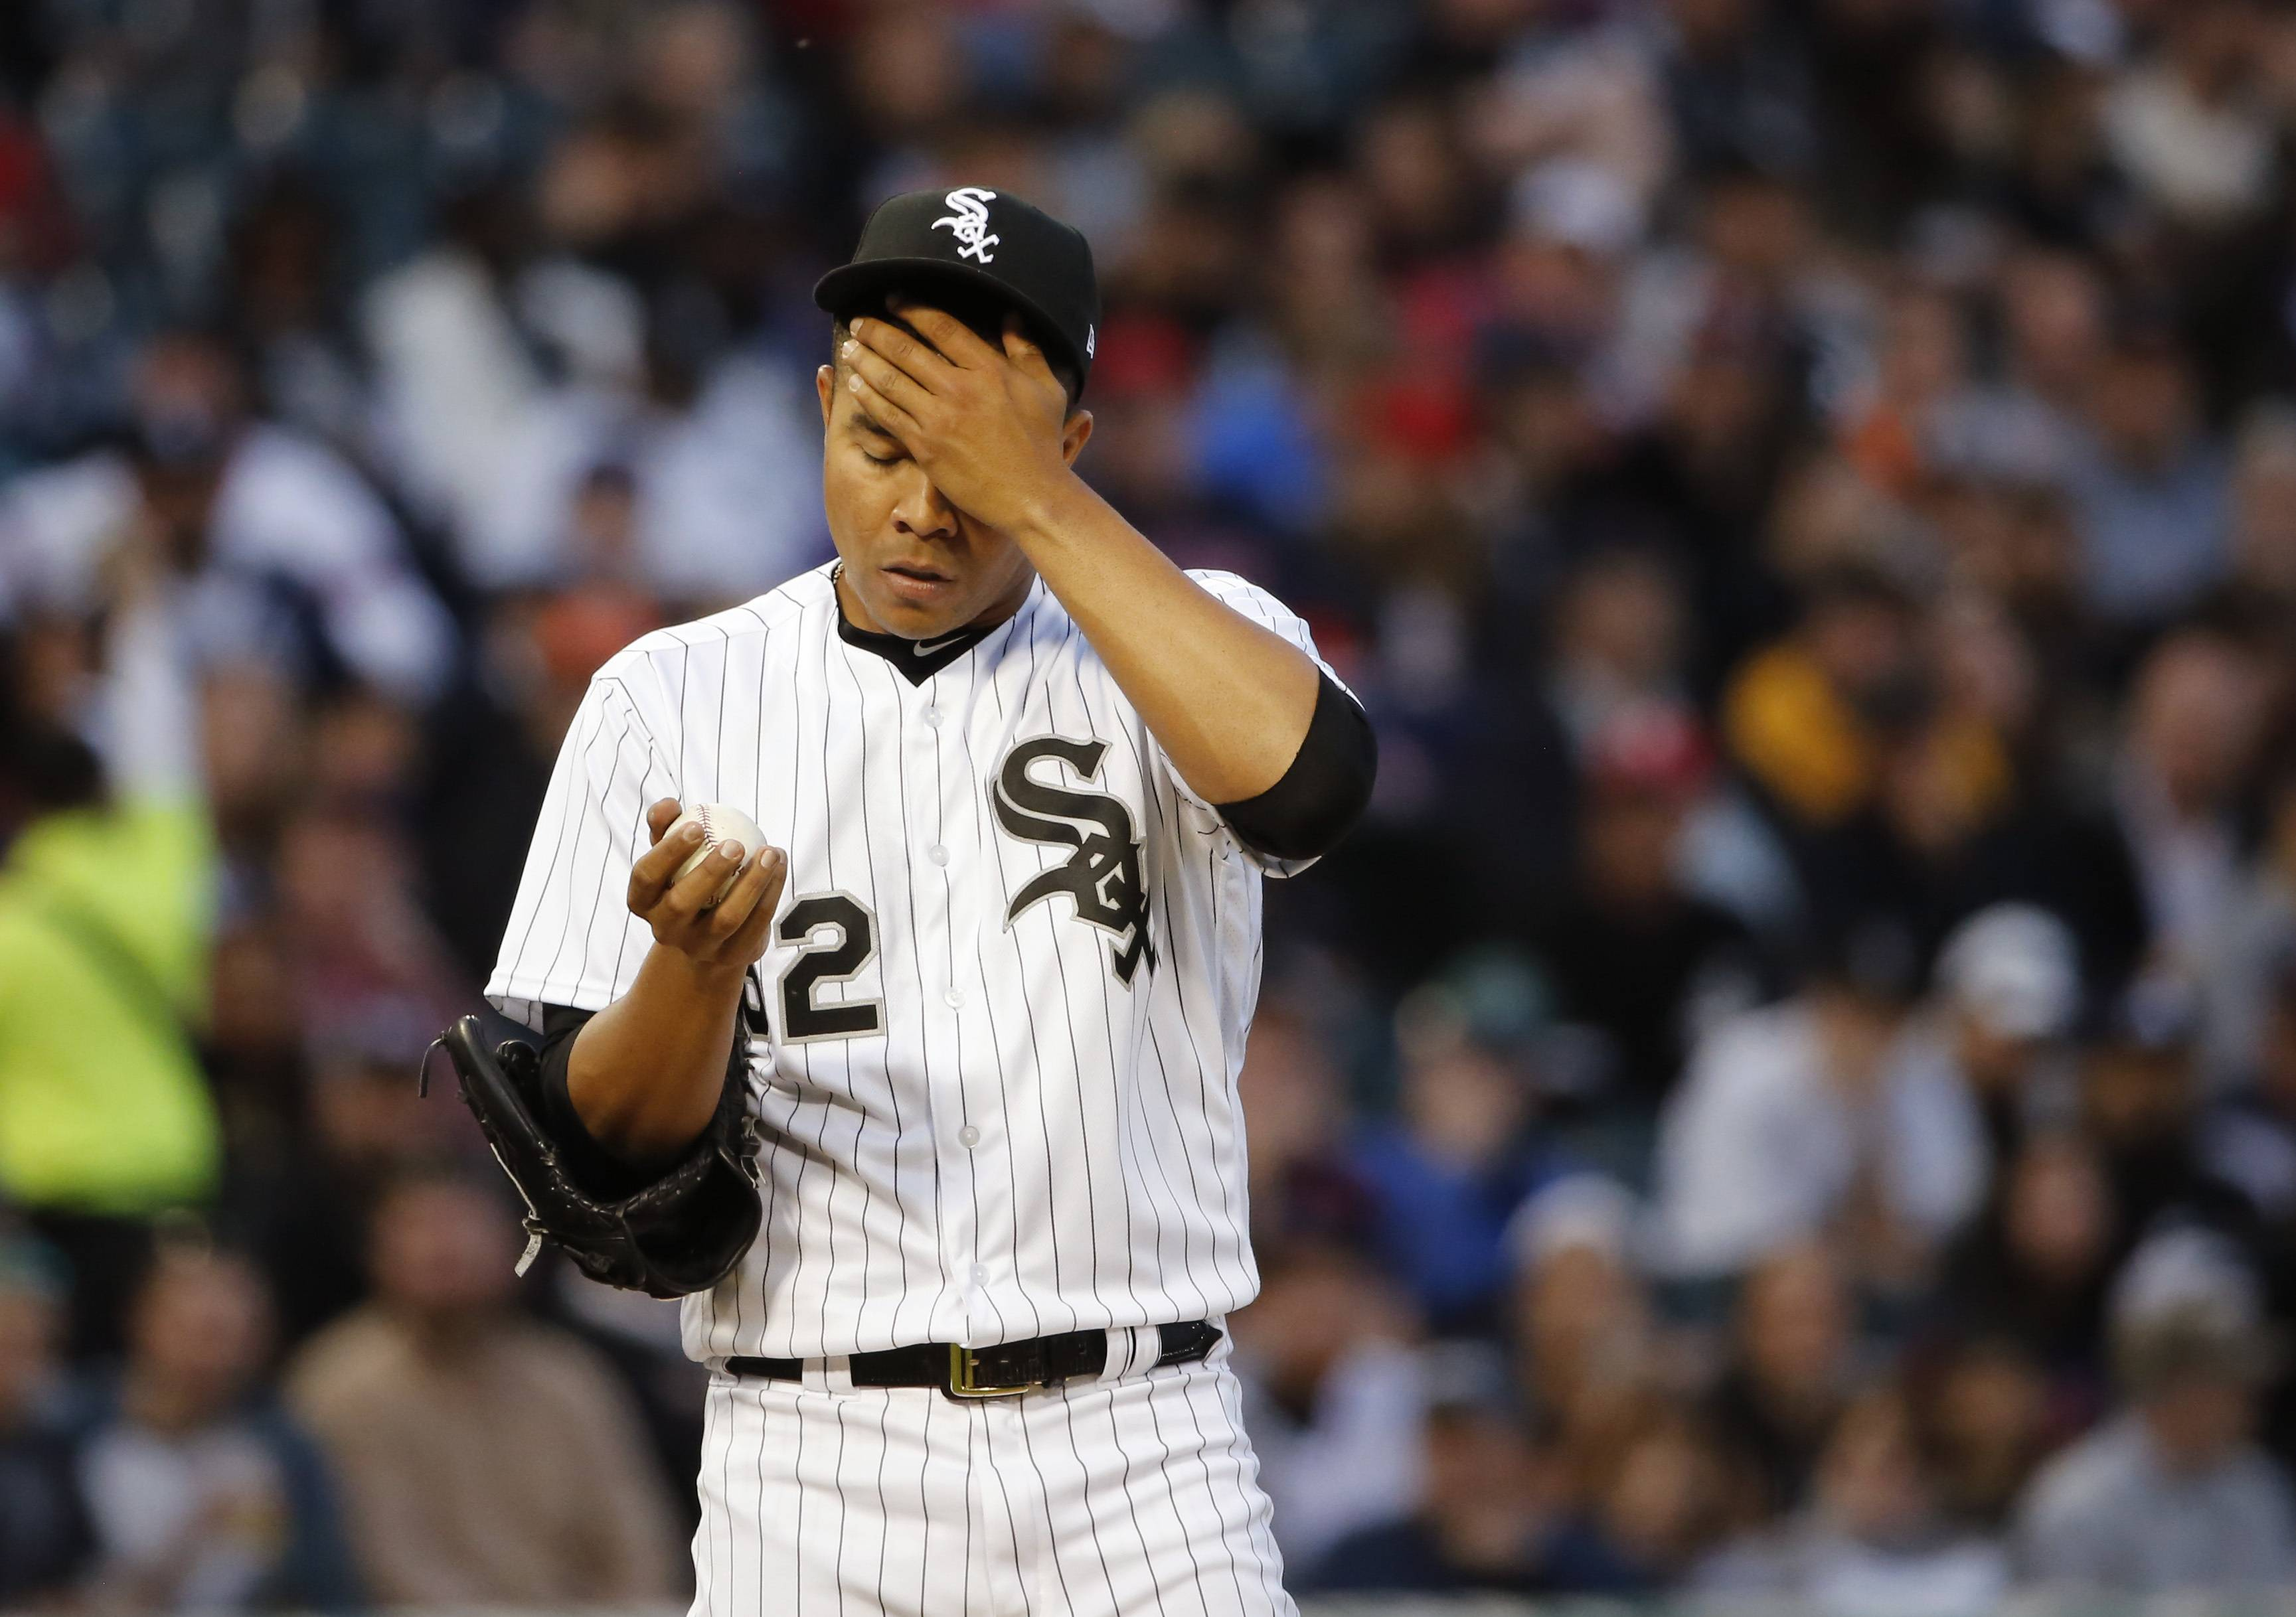 Chicago White Sox starting pitcher Jose Quintana last just 2⅔ innings Tuesday night against the Red Sox, allowing 7 earned runs on 10 hits.